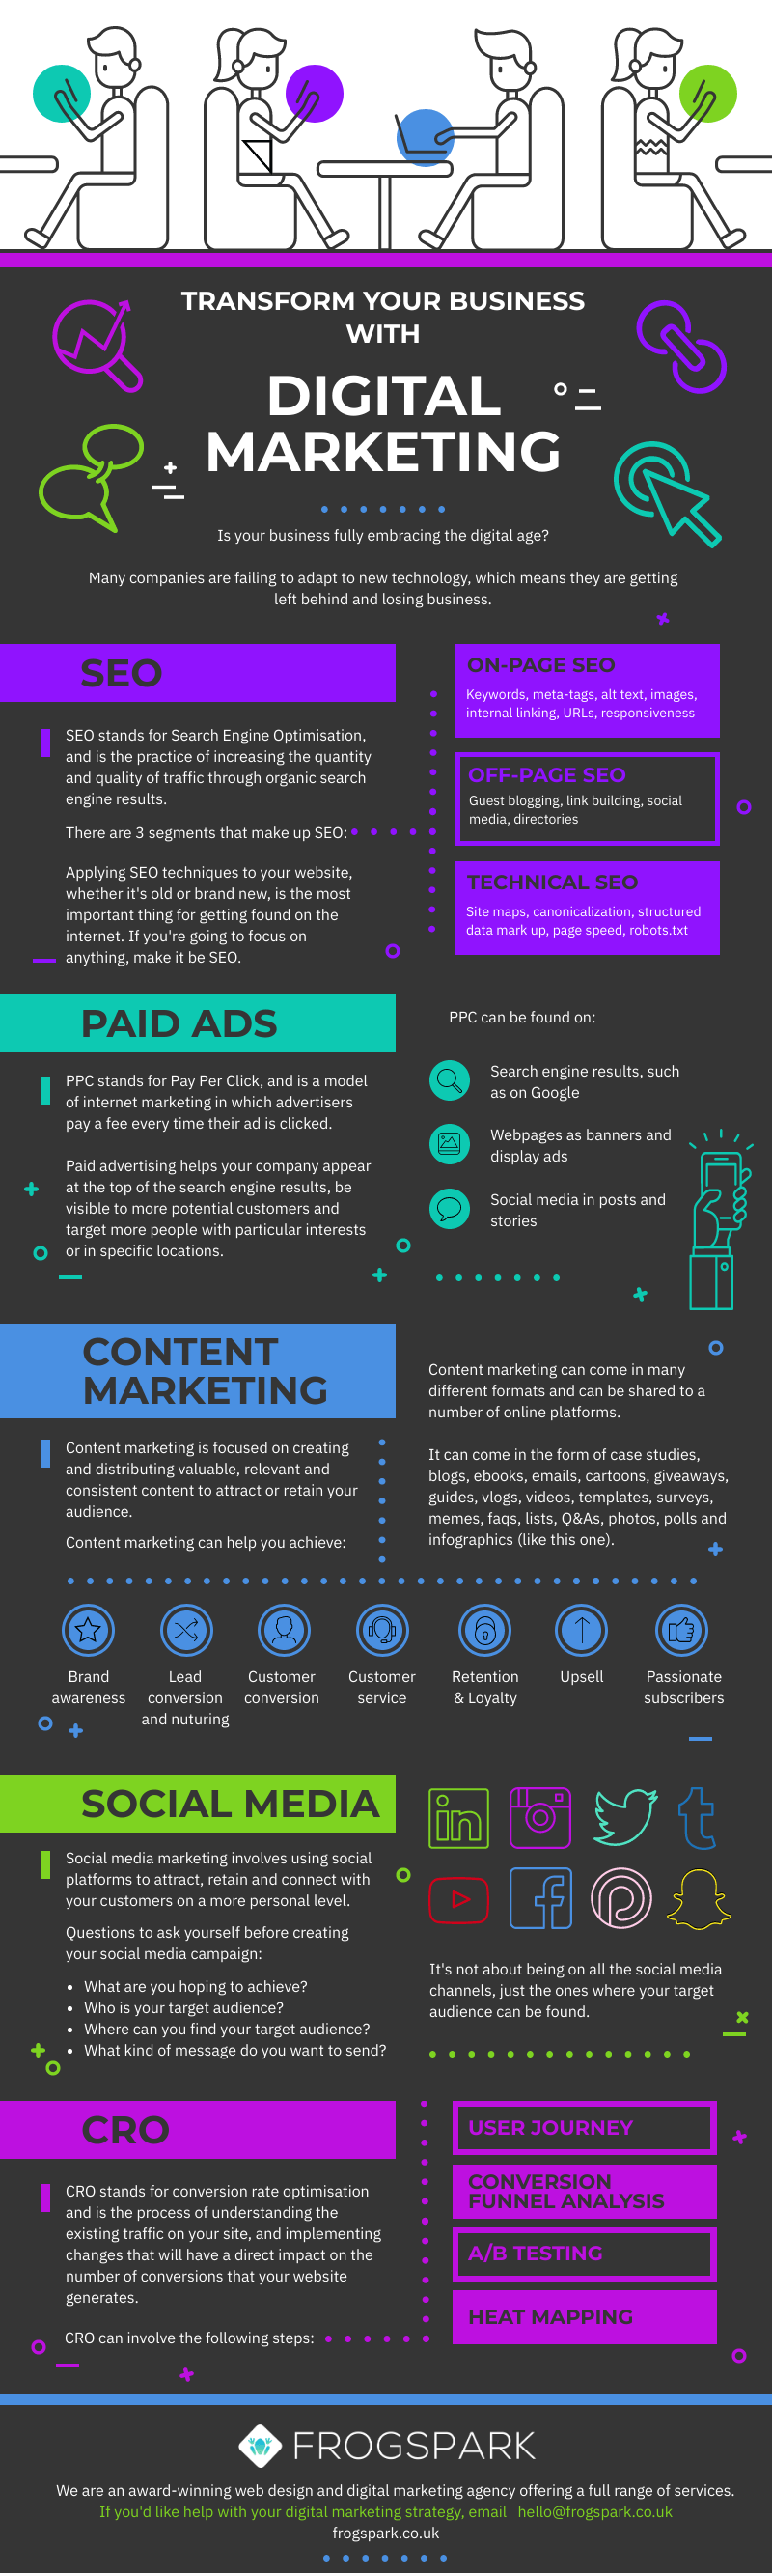 digital marketing infographic seo ppc social media content and cro